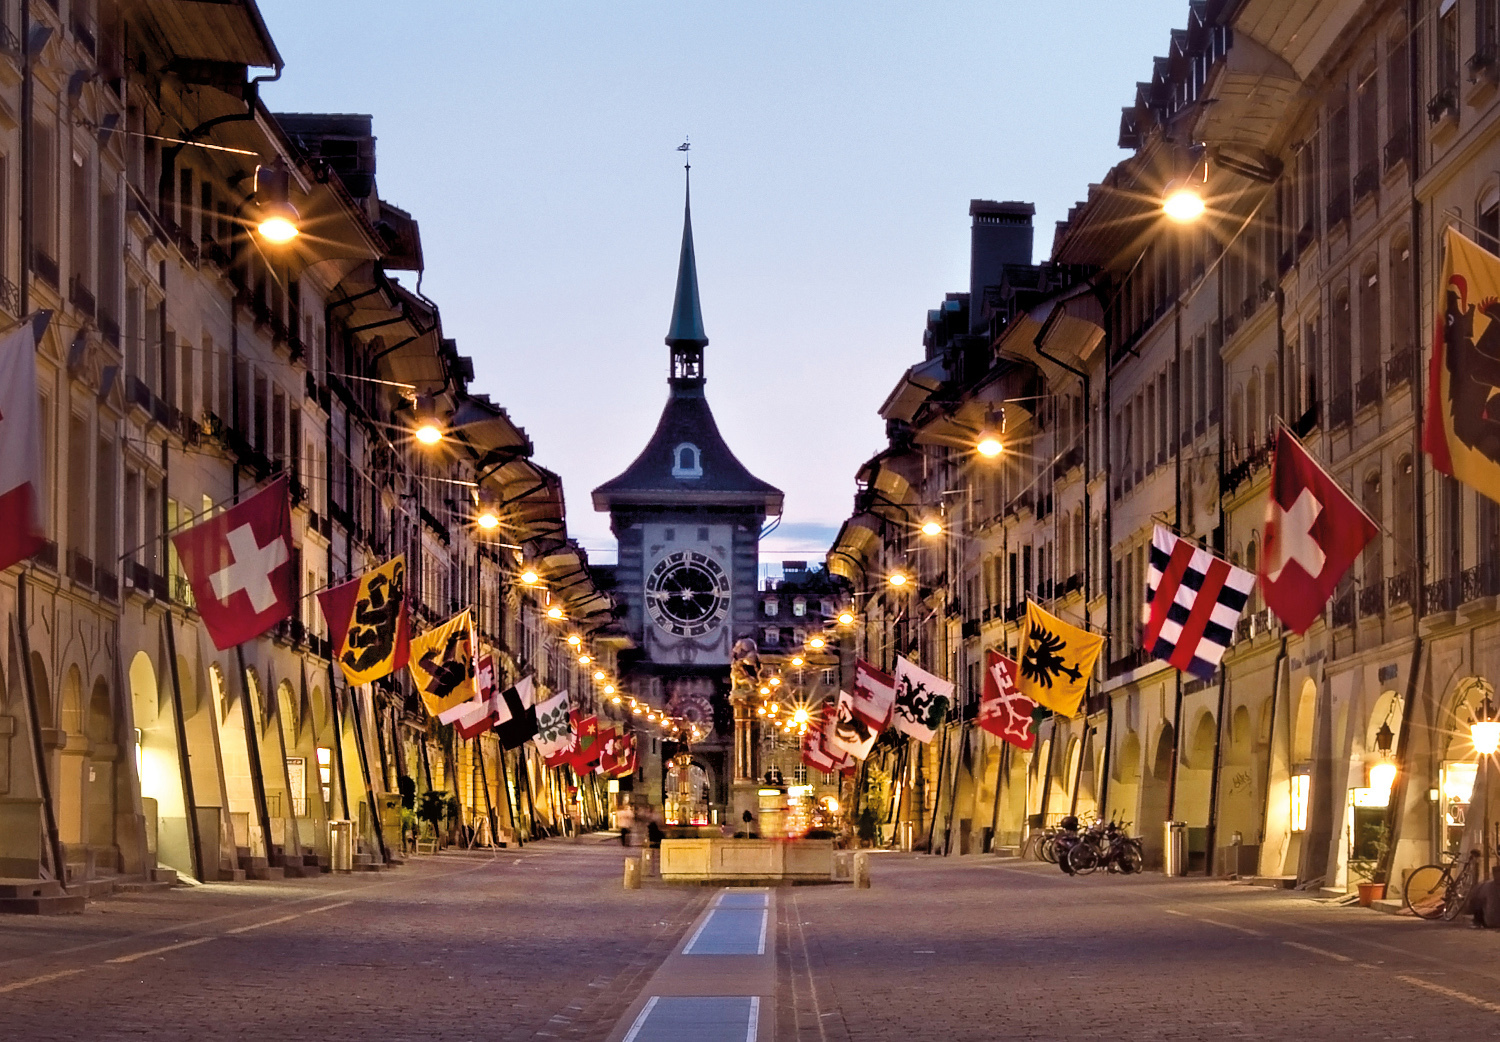 3. Wander the streets of Bern's Old Town